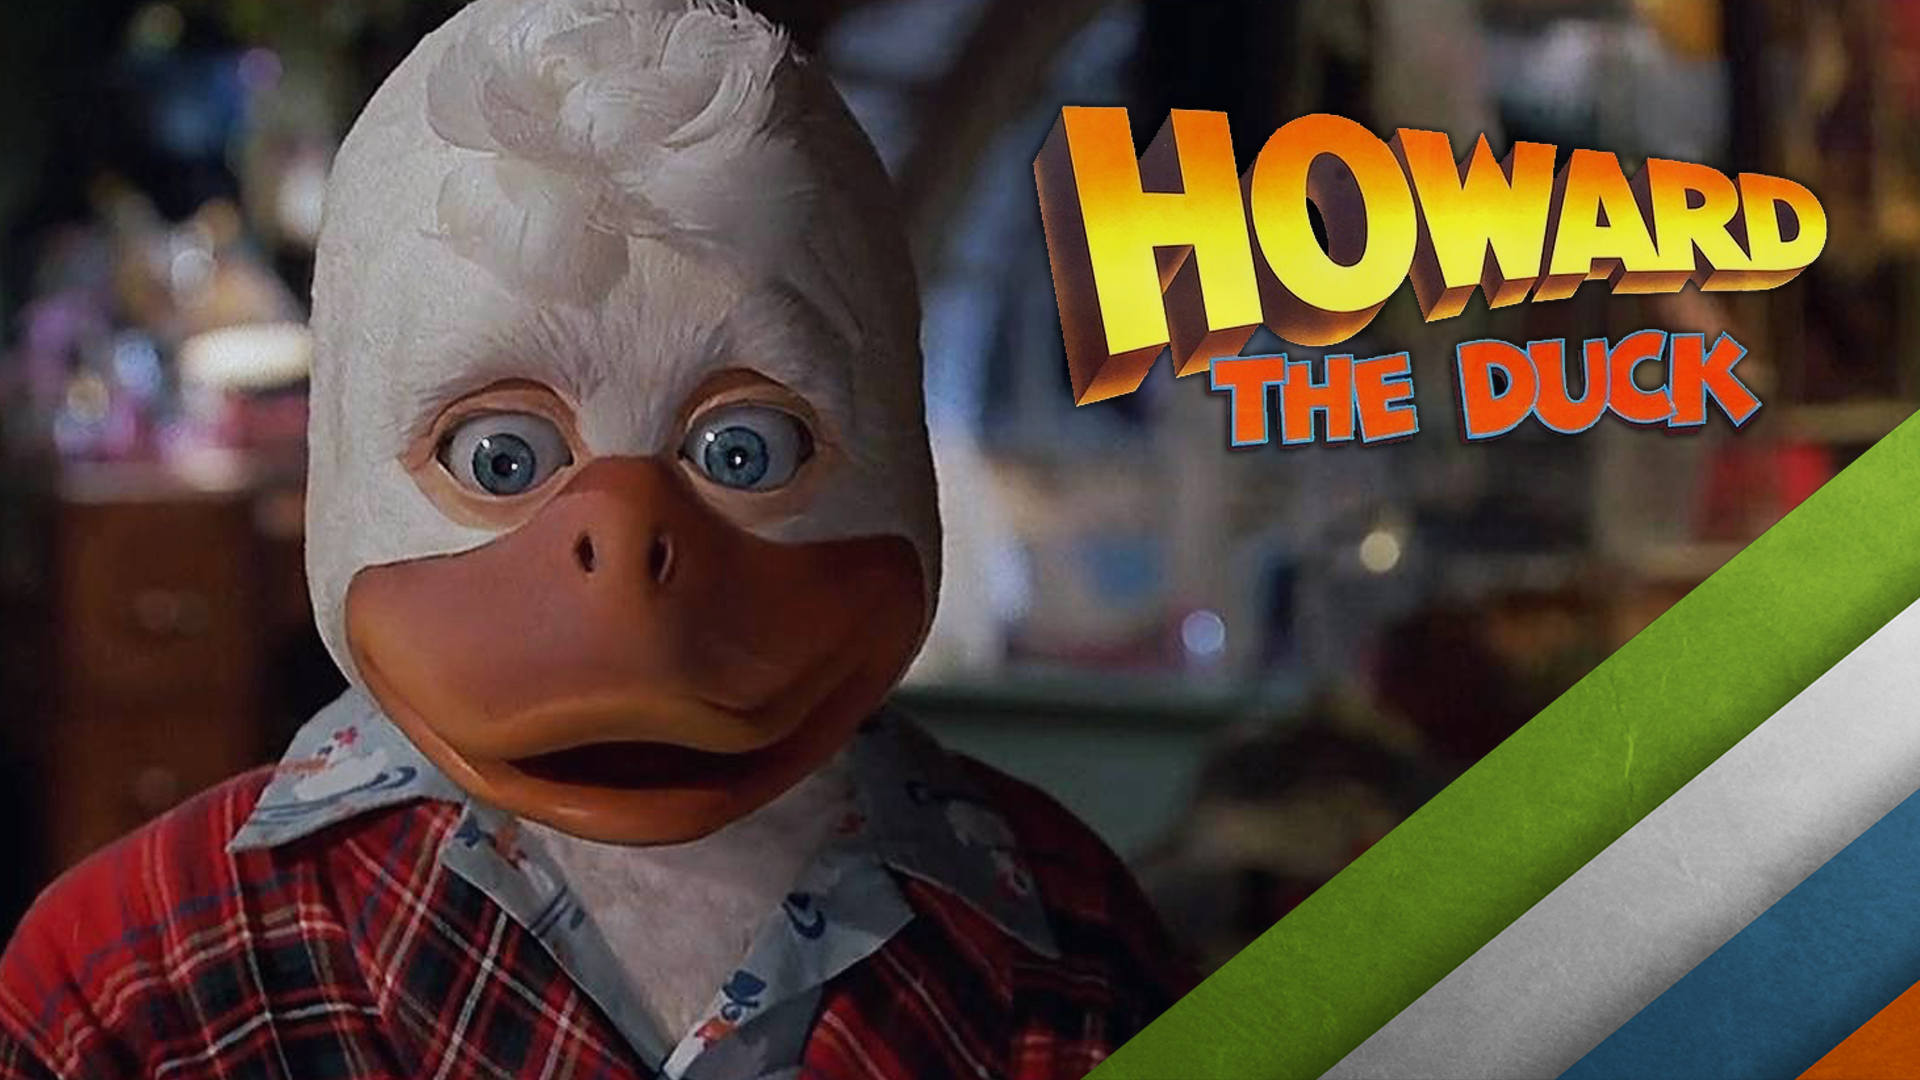 HOWARD THE DUCK (1986) - Retro Movie Review screen capture